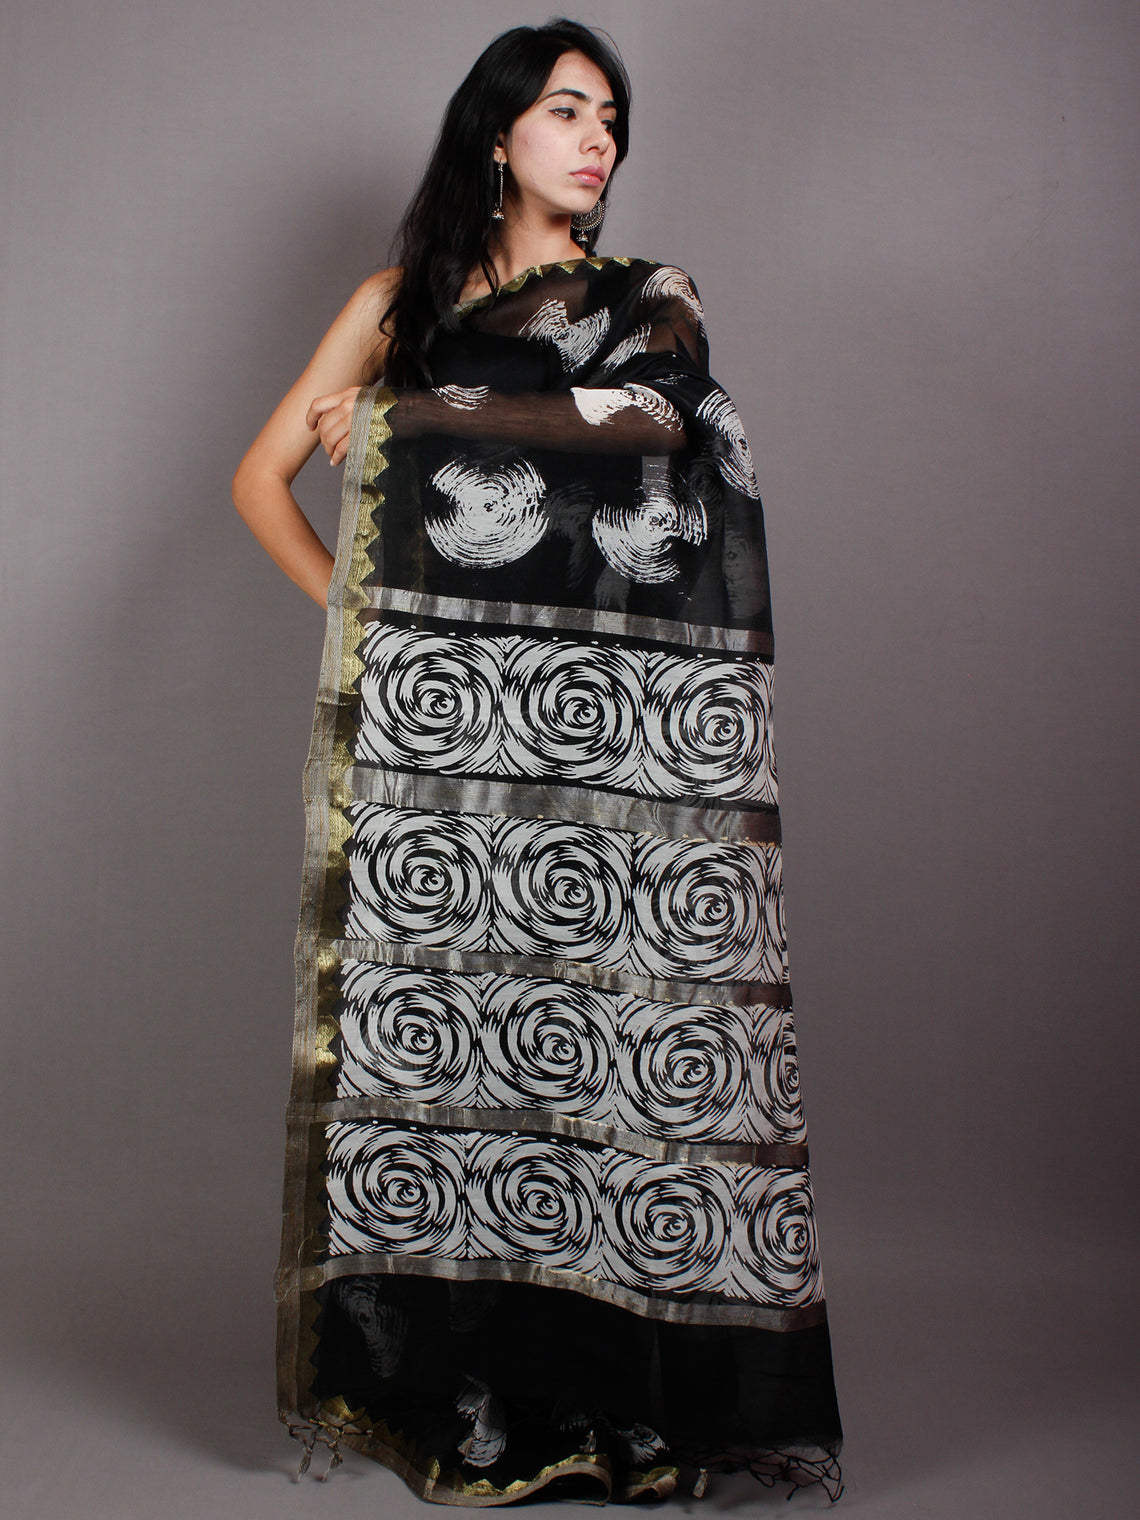 Black Ivory White Hand Block Printed in Natural Vegetable Colors Chanderi Saree With Geecha Border - S03170543